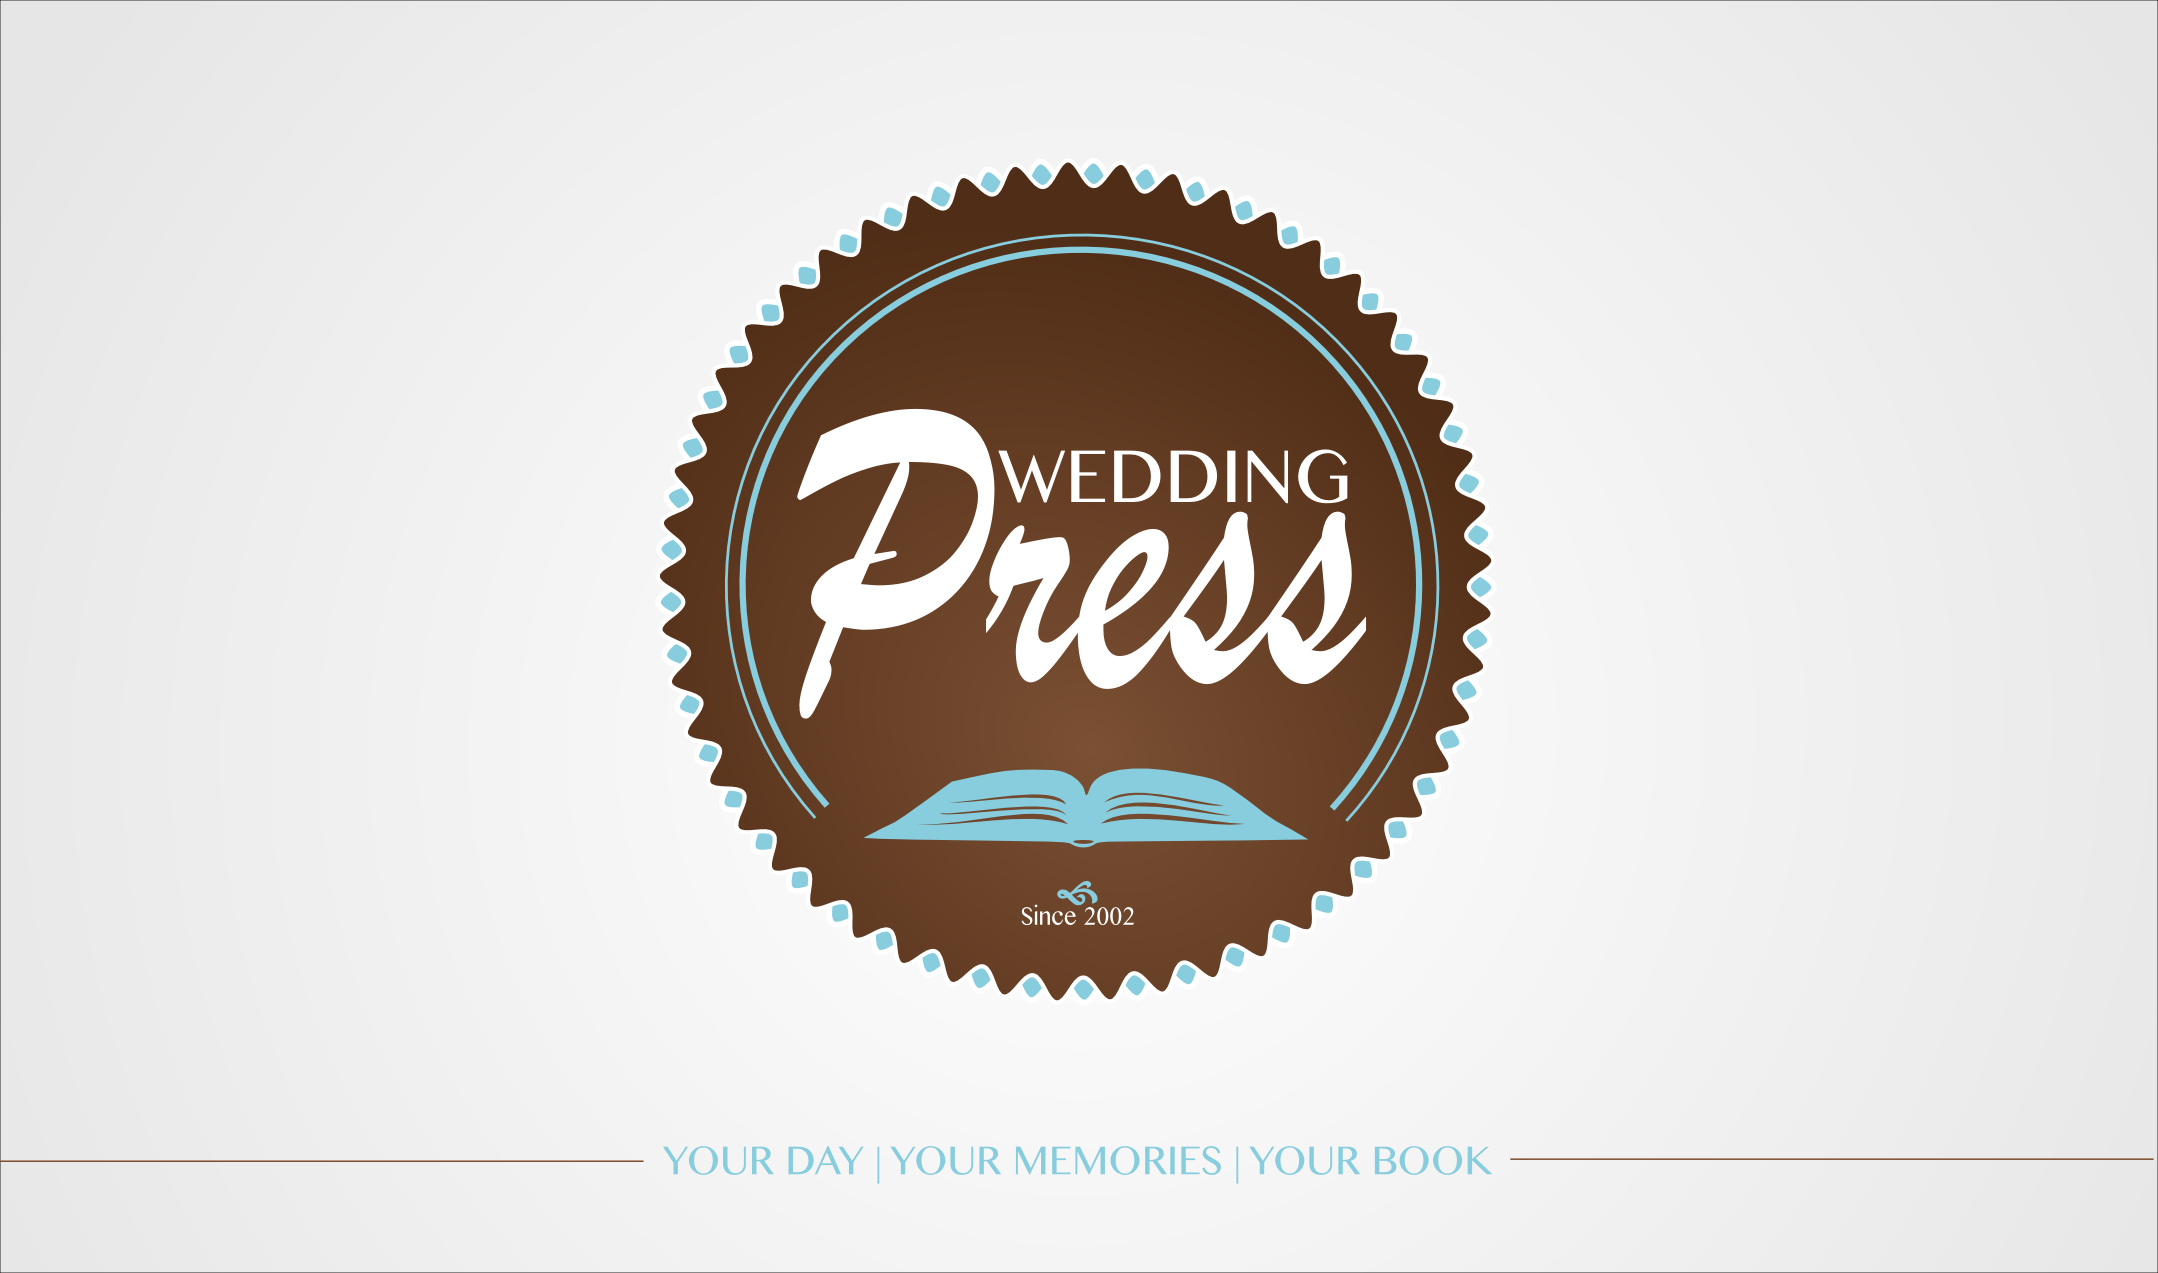 Logo Design by Andrew Bertram - Entry No. 51 in the Logo Design Contest Wedding Writes Logo Design.